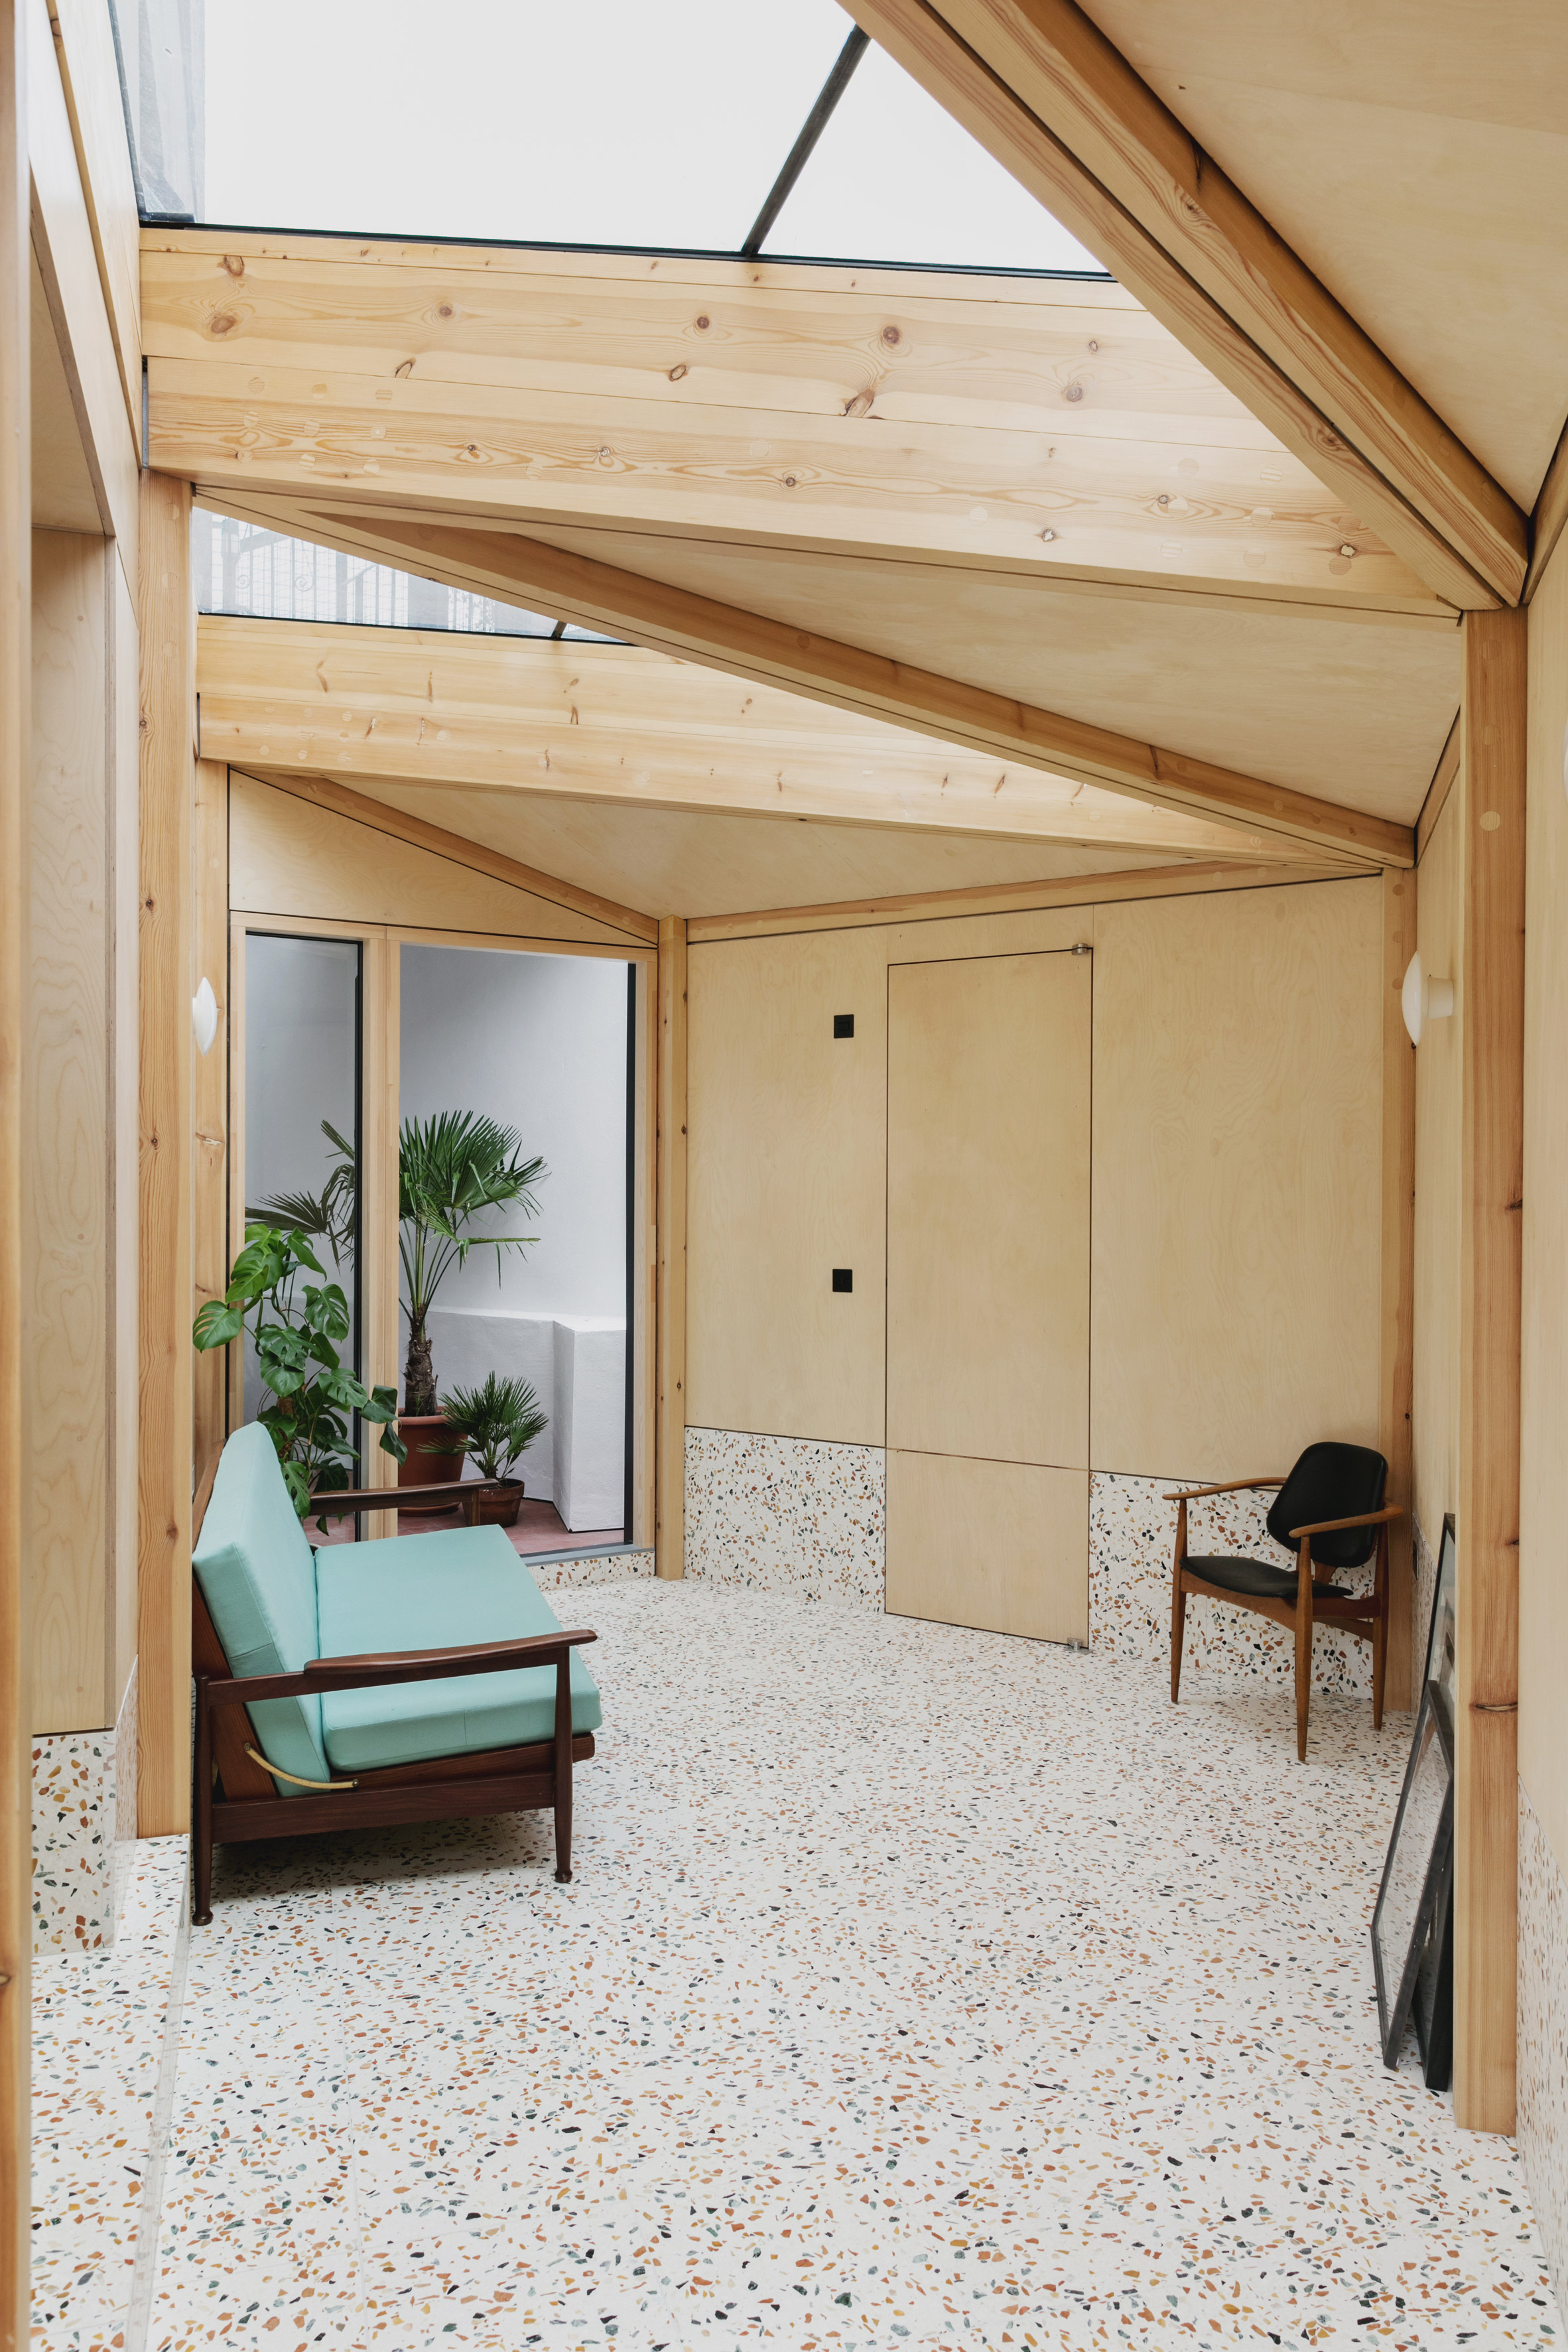 Montague Court extension by IF_DO